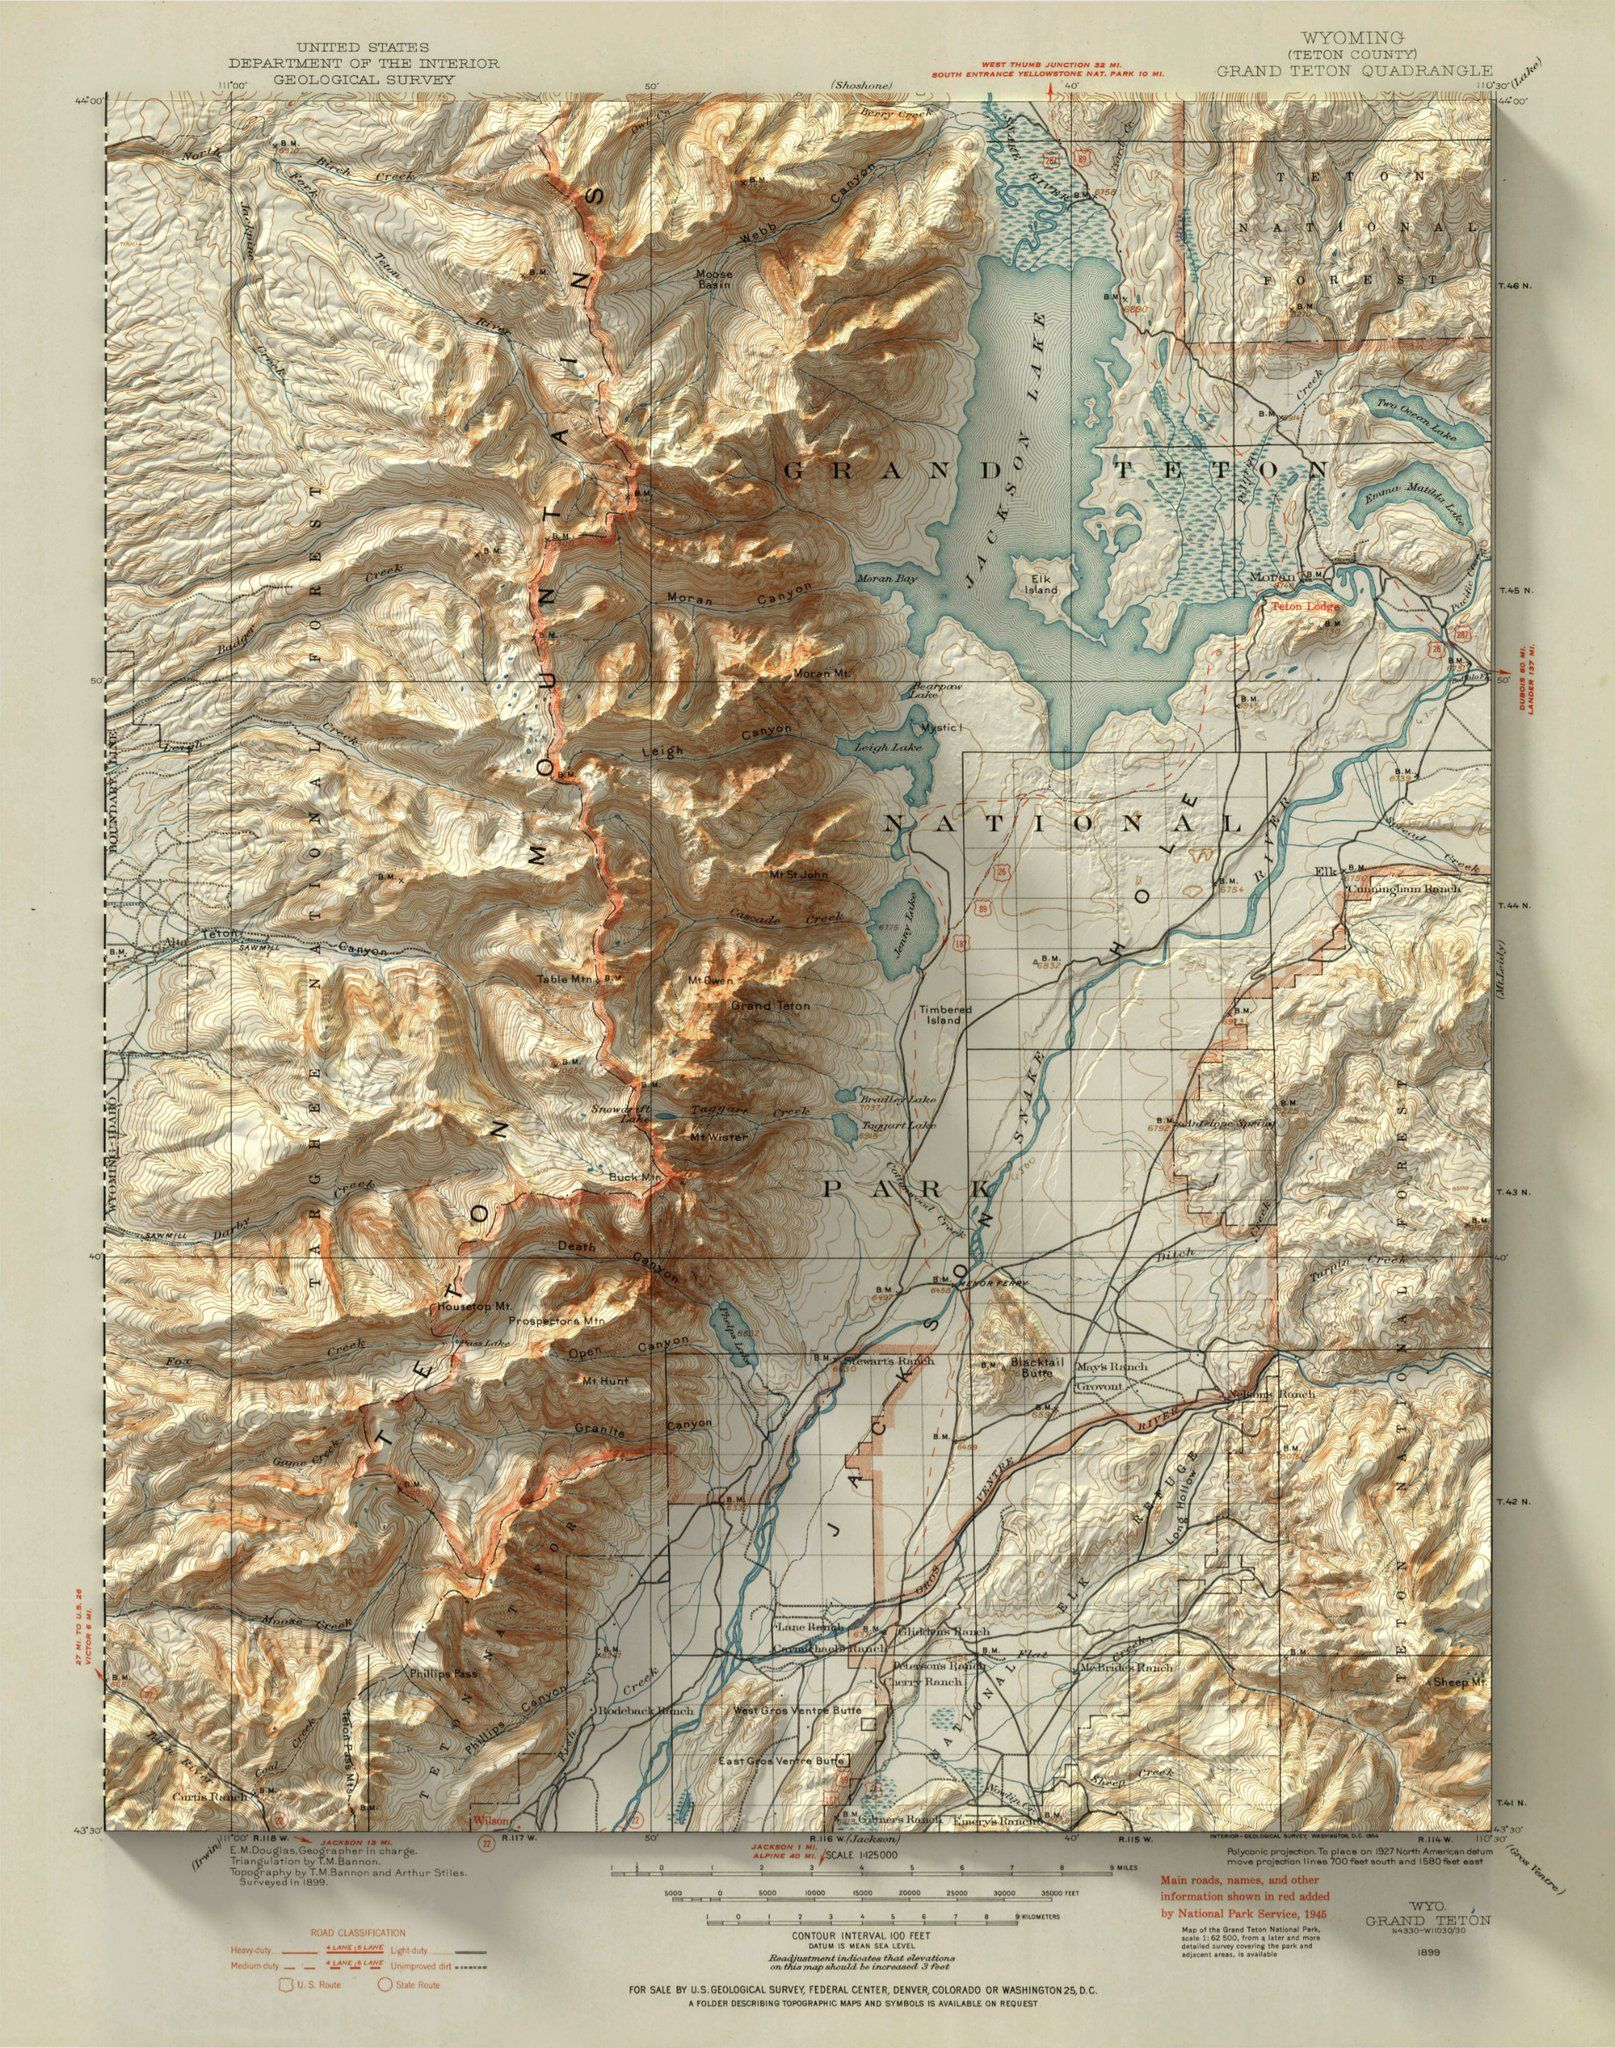 Scott Reinhard Auf Twitter 3d Elevation Combined With A Usgs Topographic Map From 1899 Of Grandtetonnps Gis Qgis Map Artwork Vintage Maps Digital Shadow